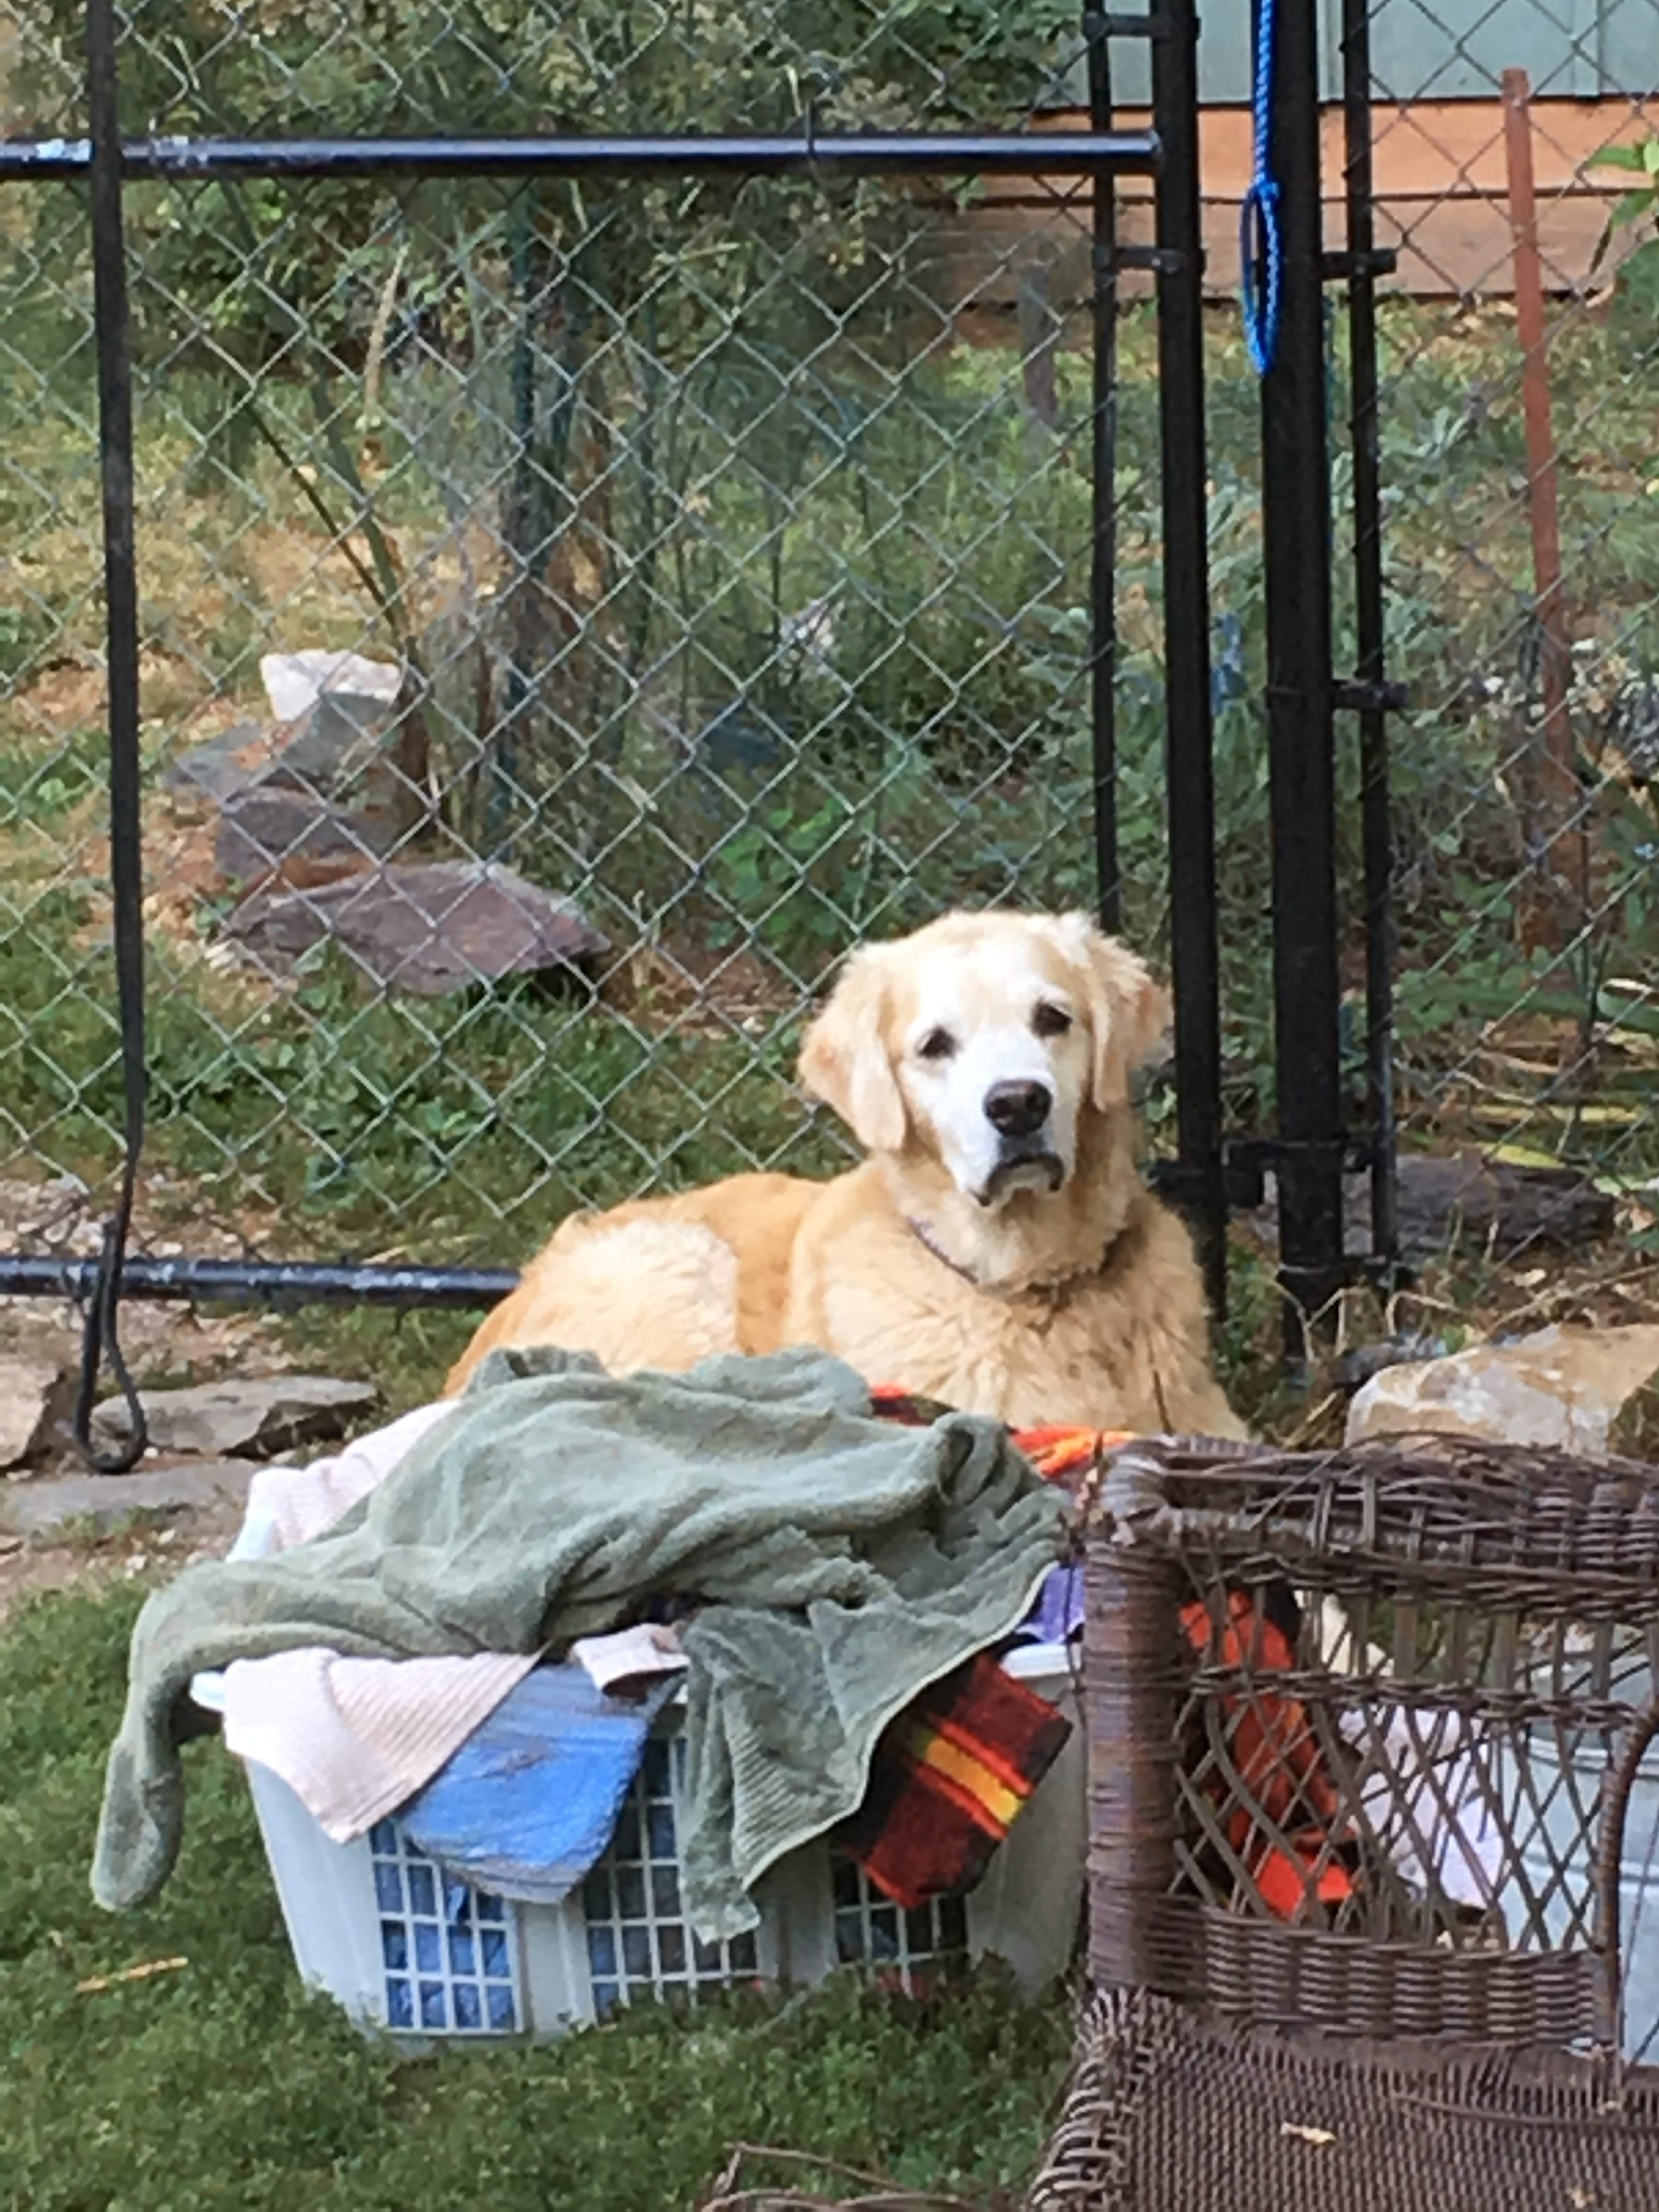 photo of golden lab by the laundry basket